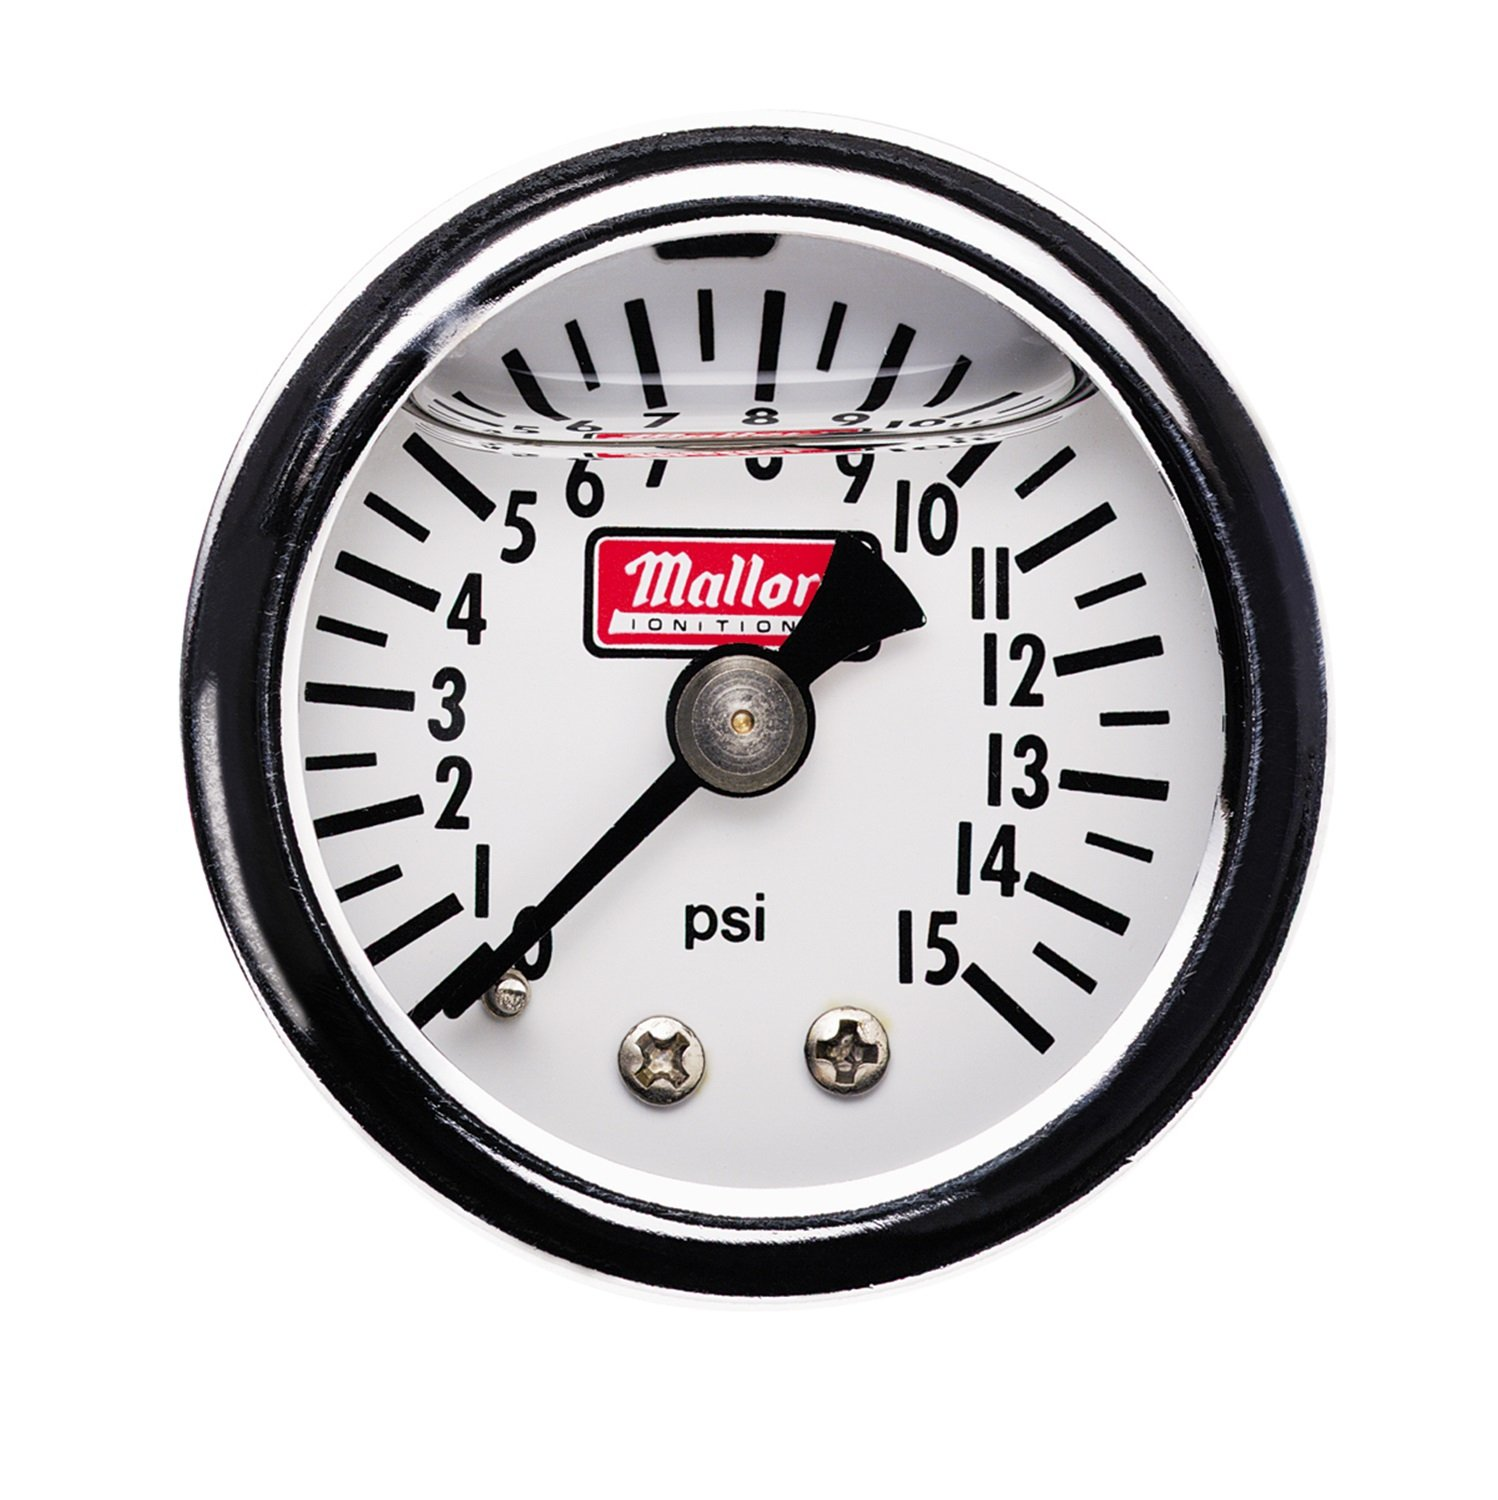 Mallory 29138 Fuel Pressure Gauge (0-15Psi, Mechanical) by Mallory